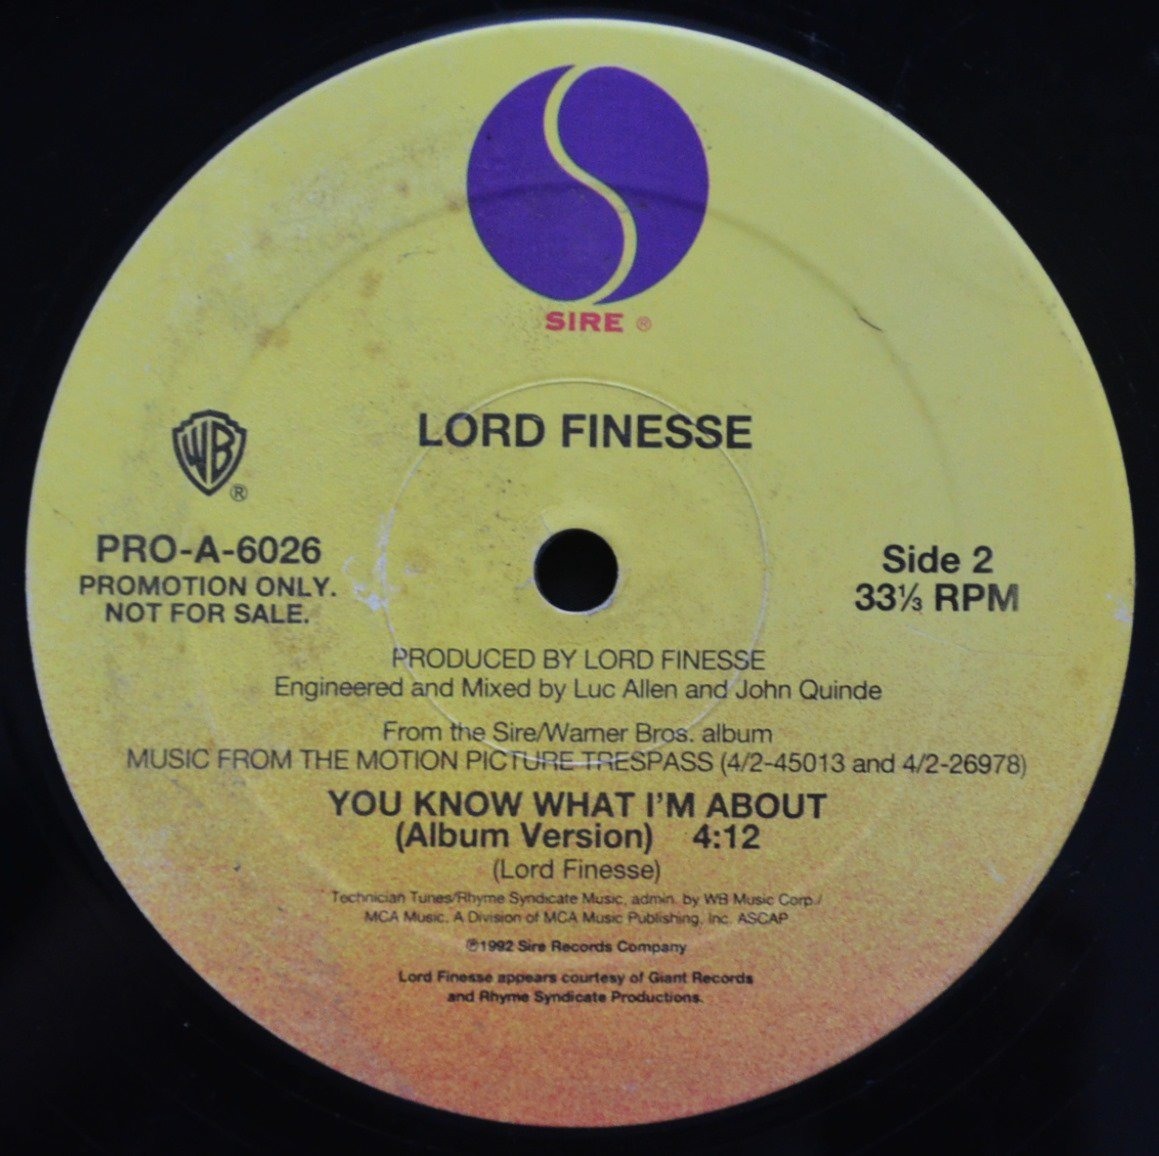 LORD FINESSE / AMG /  YOU KNOW WHAT I'M ABOUT / DON'T BE A 304 (12